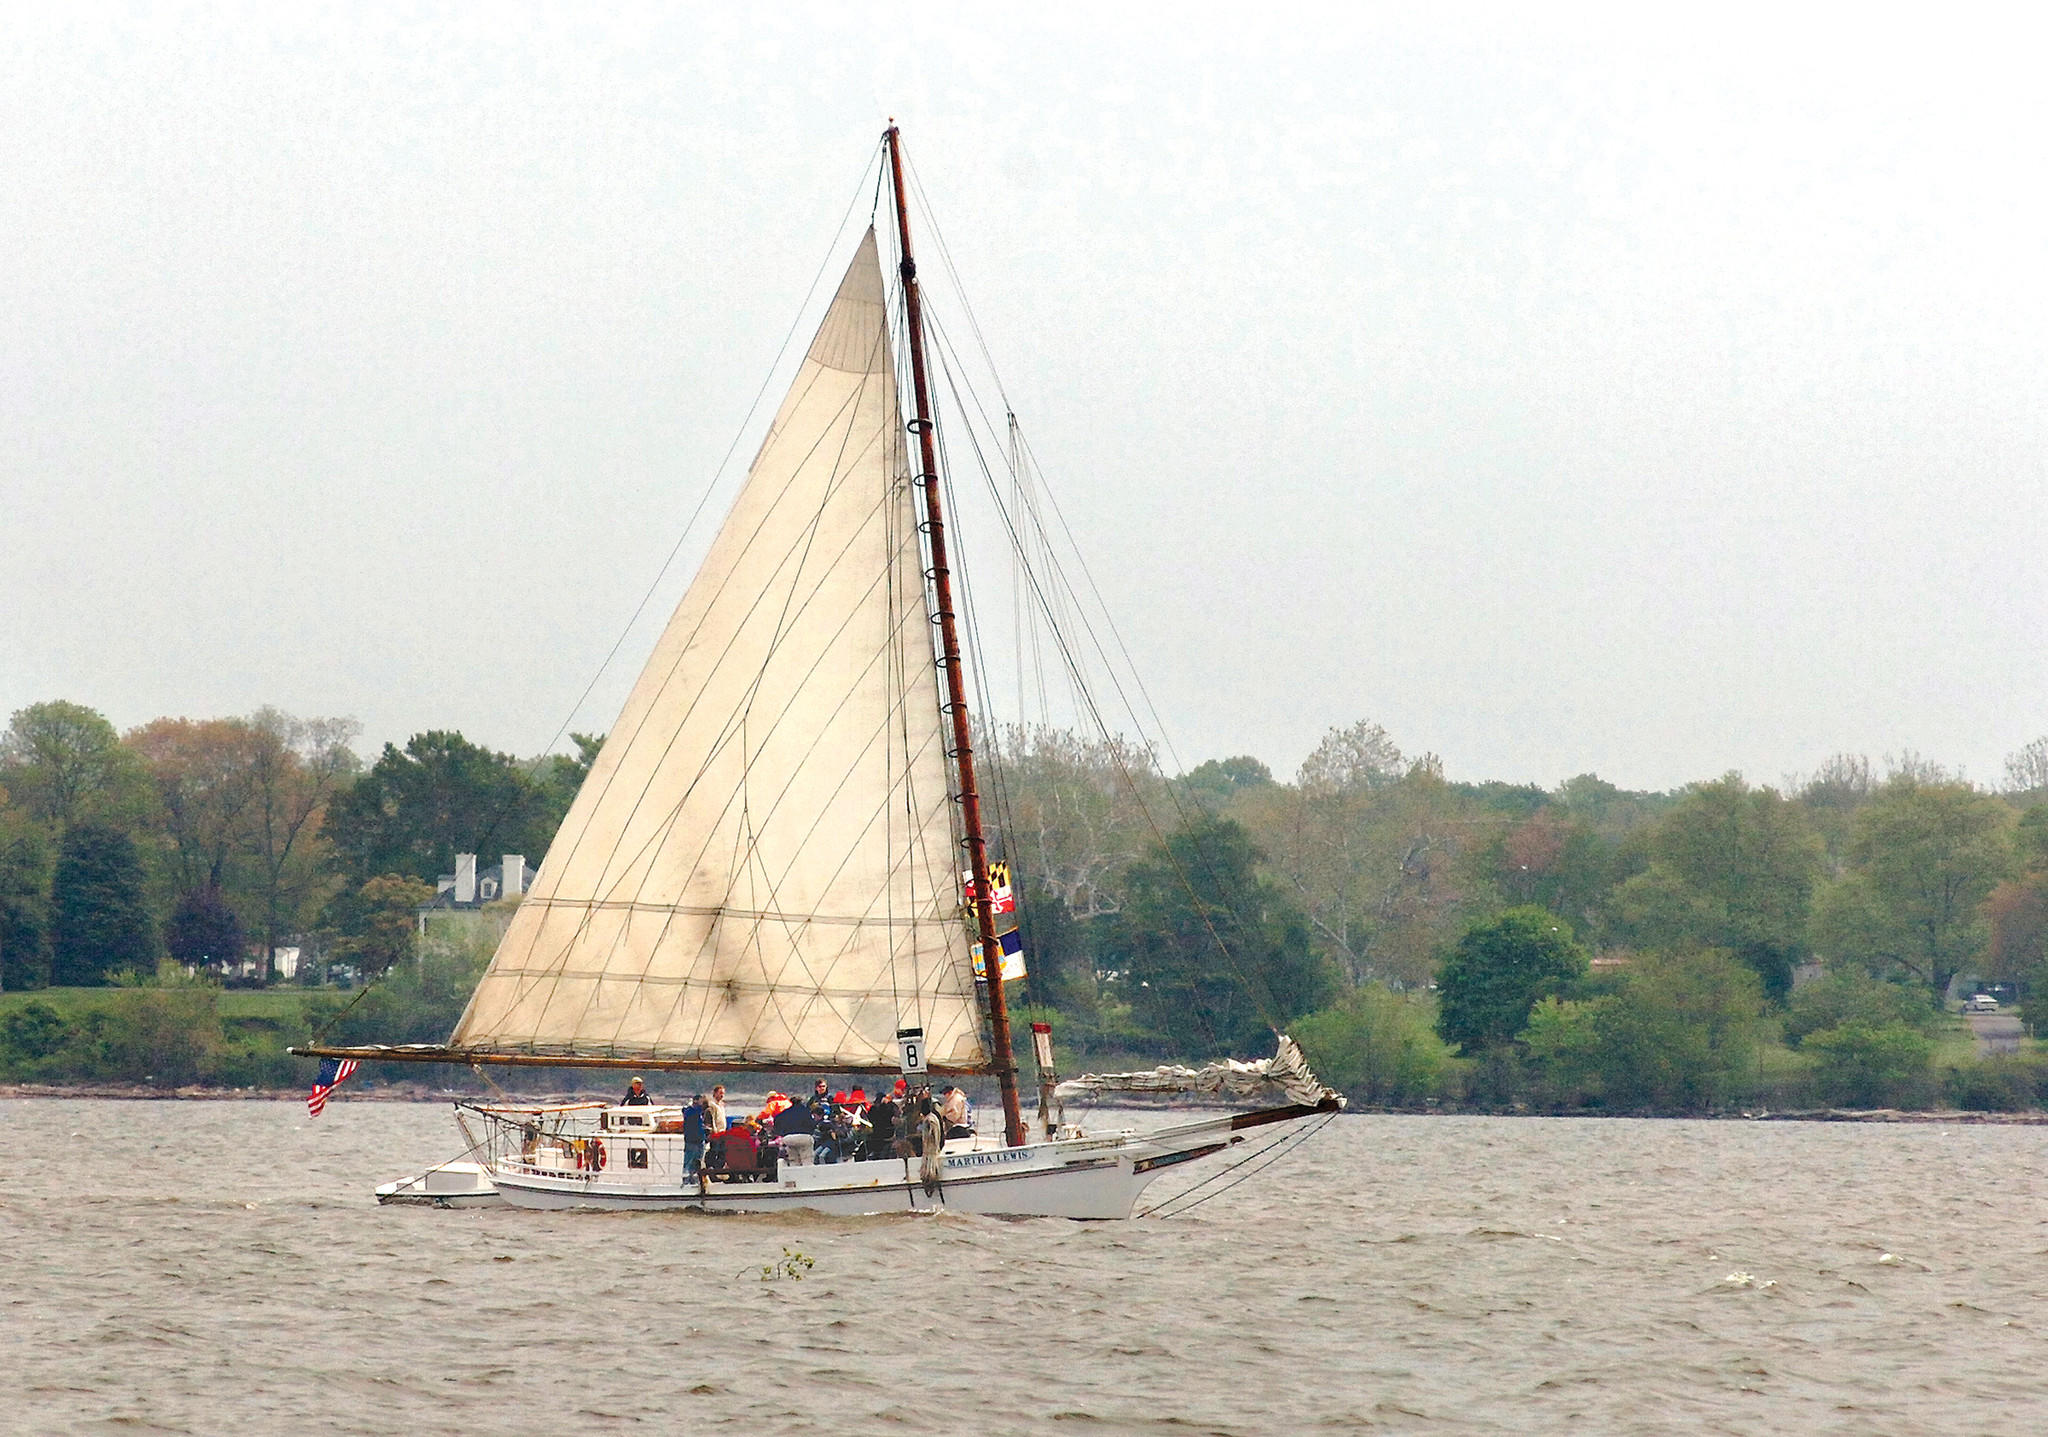 With a strong morning breeze helping them along, the Skipjack Martha Lewis cruises along the Susquehanna flats in 2008.